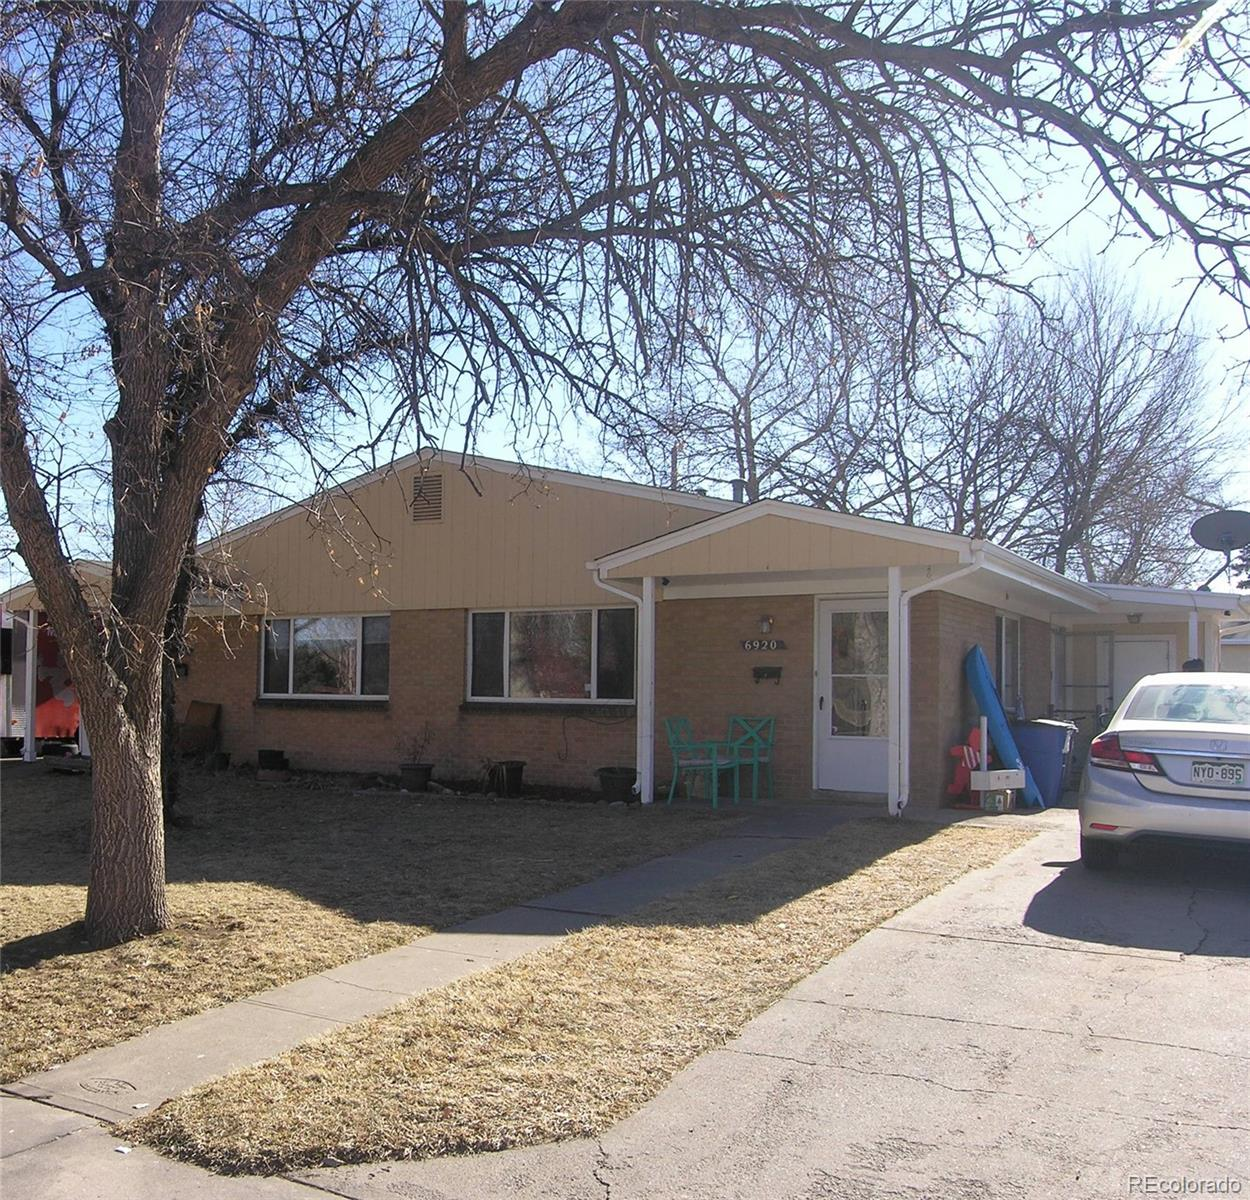 6910-6920 W Mexico Drive, Lakewood, CO 80232 - Lakewood, CO real estate listing